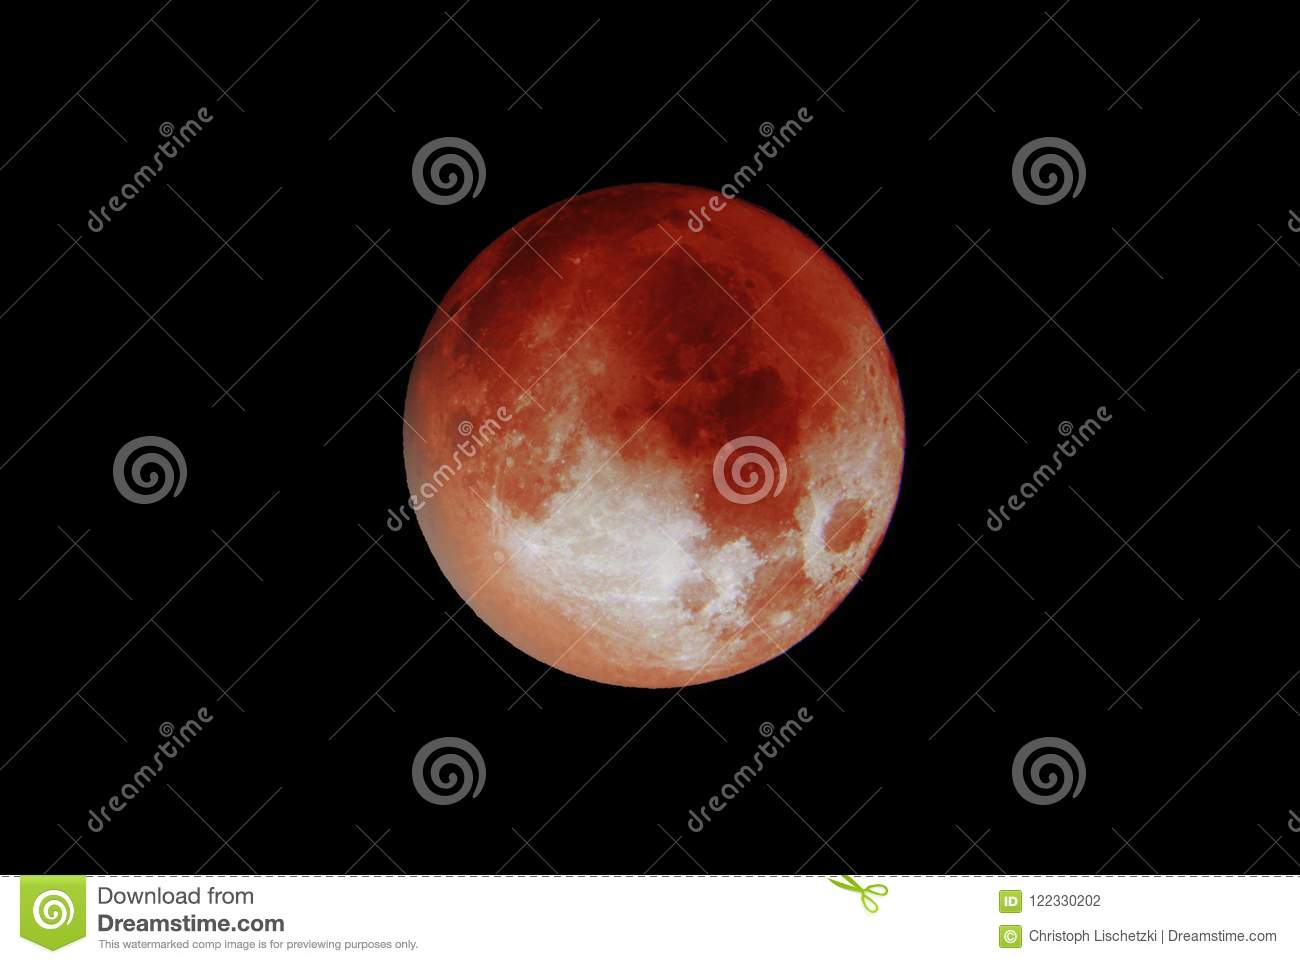 Copy Shop Koblenz Koblenz Germany 27 07 2018 Blood Moon 2018 The Dark Black Sky